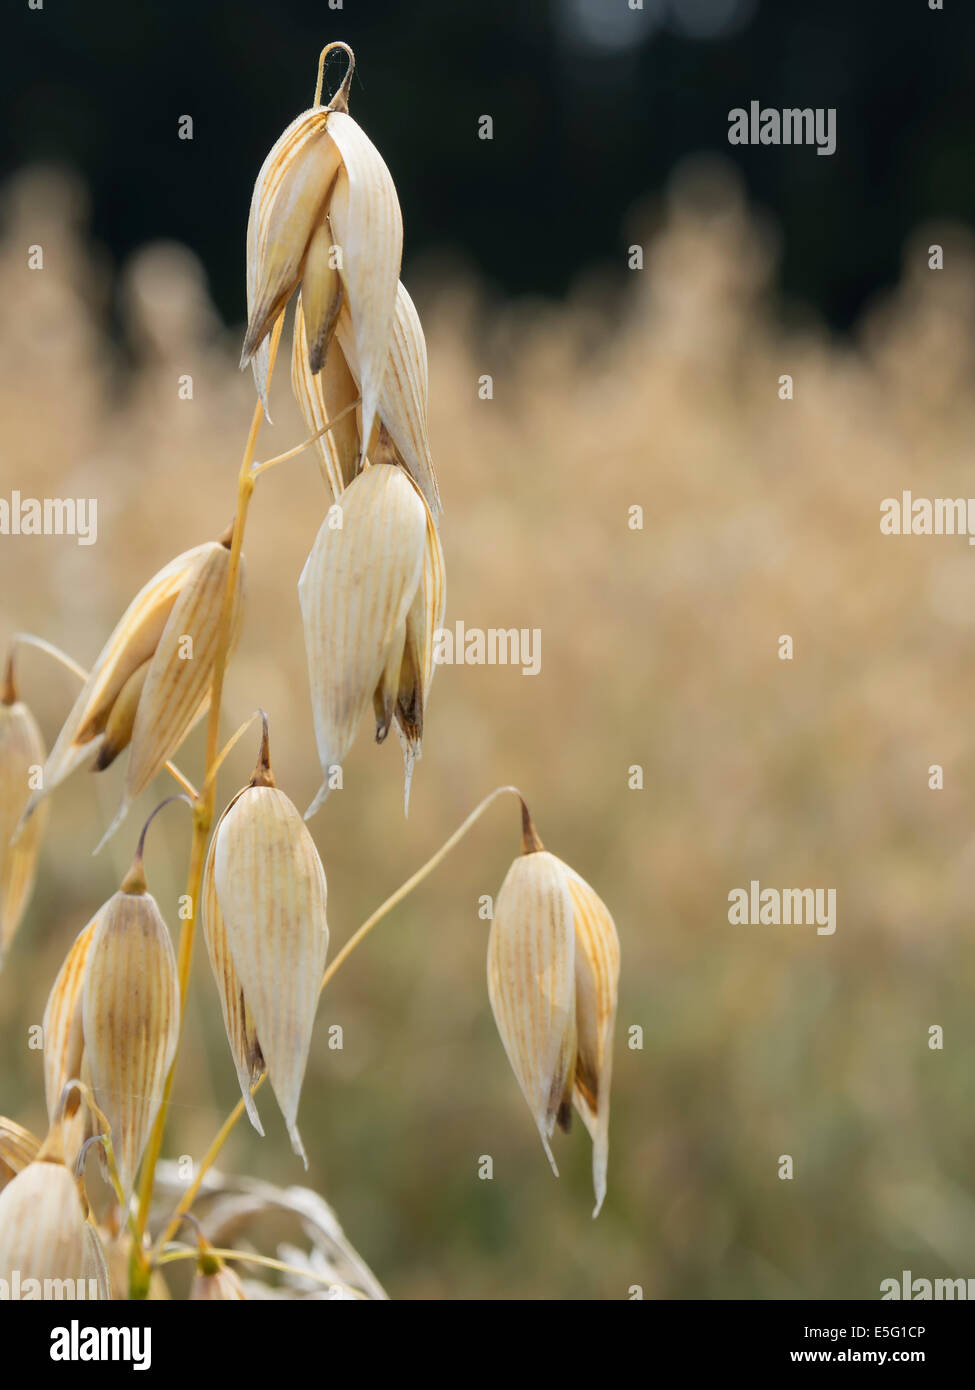 Close up of golden oat plants - Stock Image